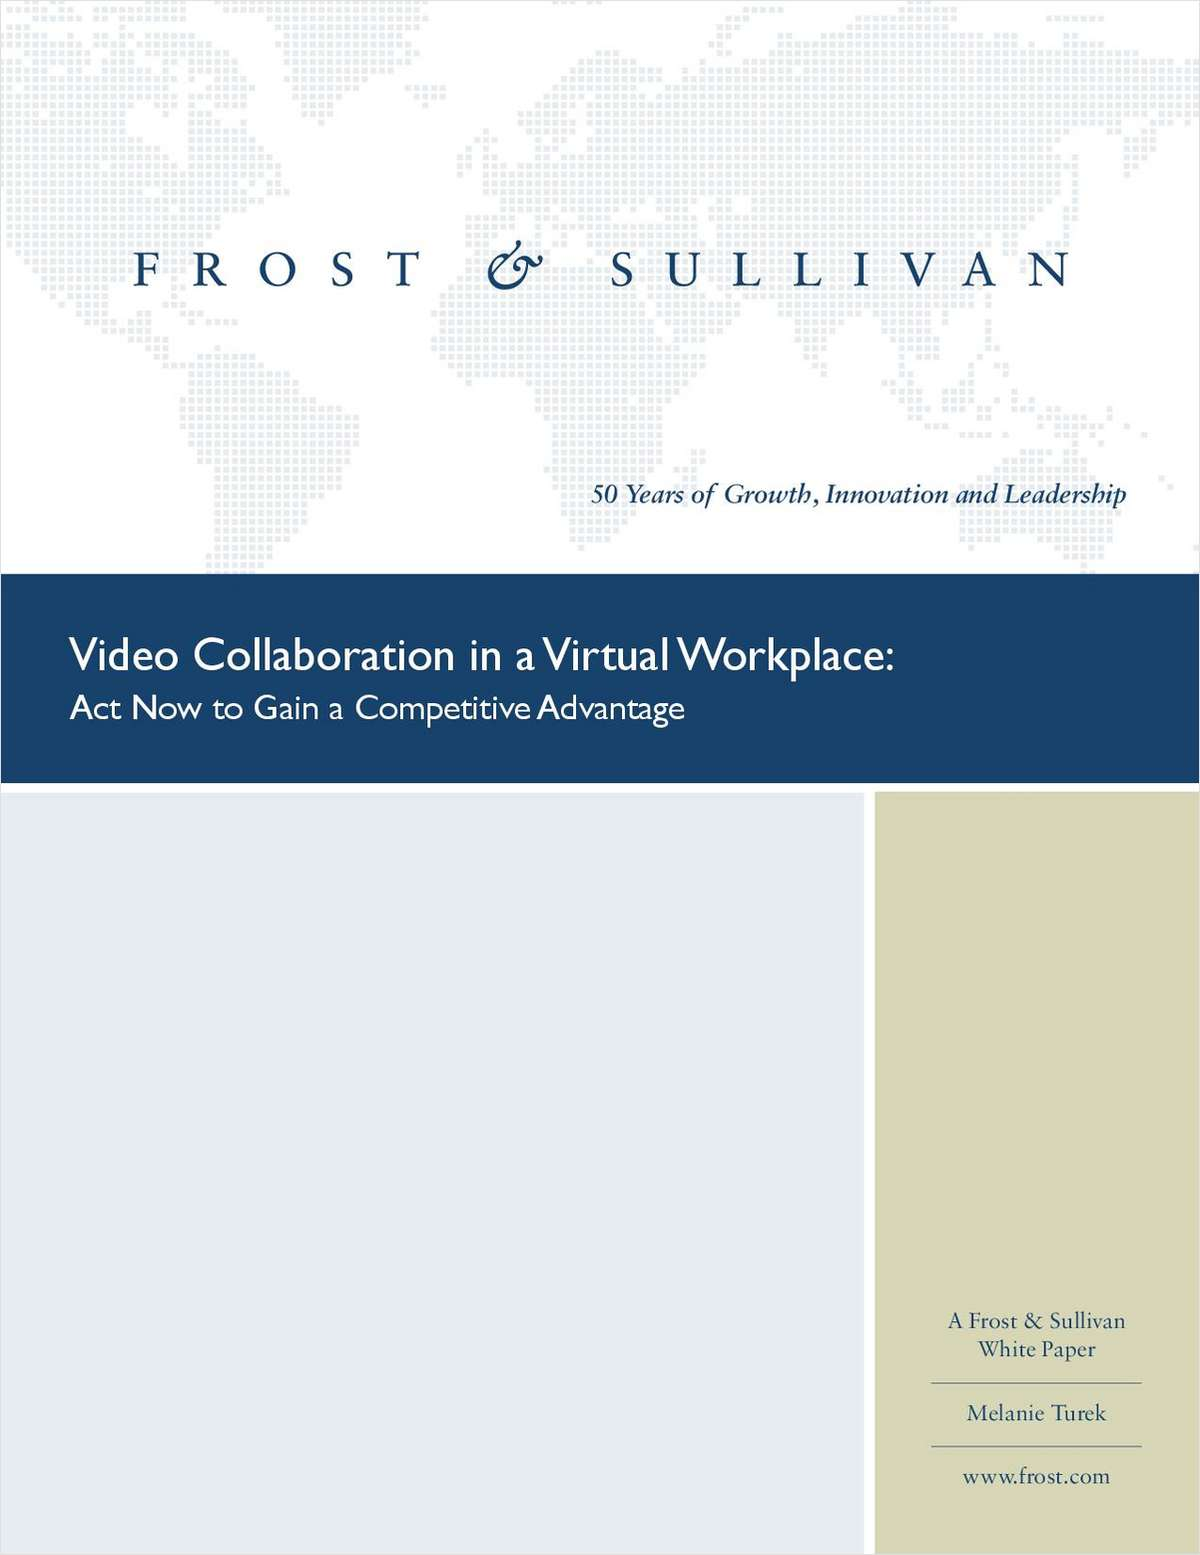 Video Collaboration in a Virtual Workplace: Act Now to Gain a Competitive Advantage